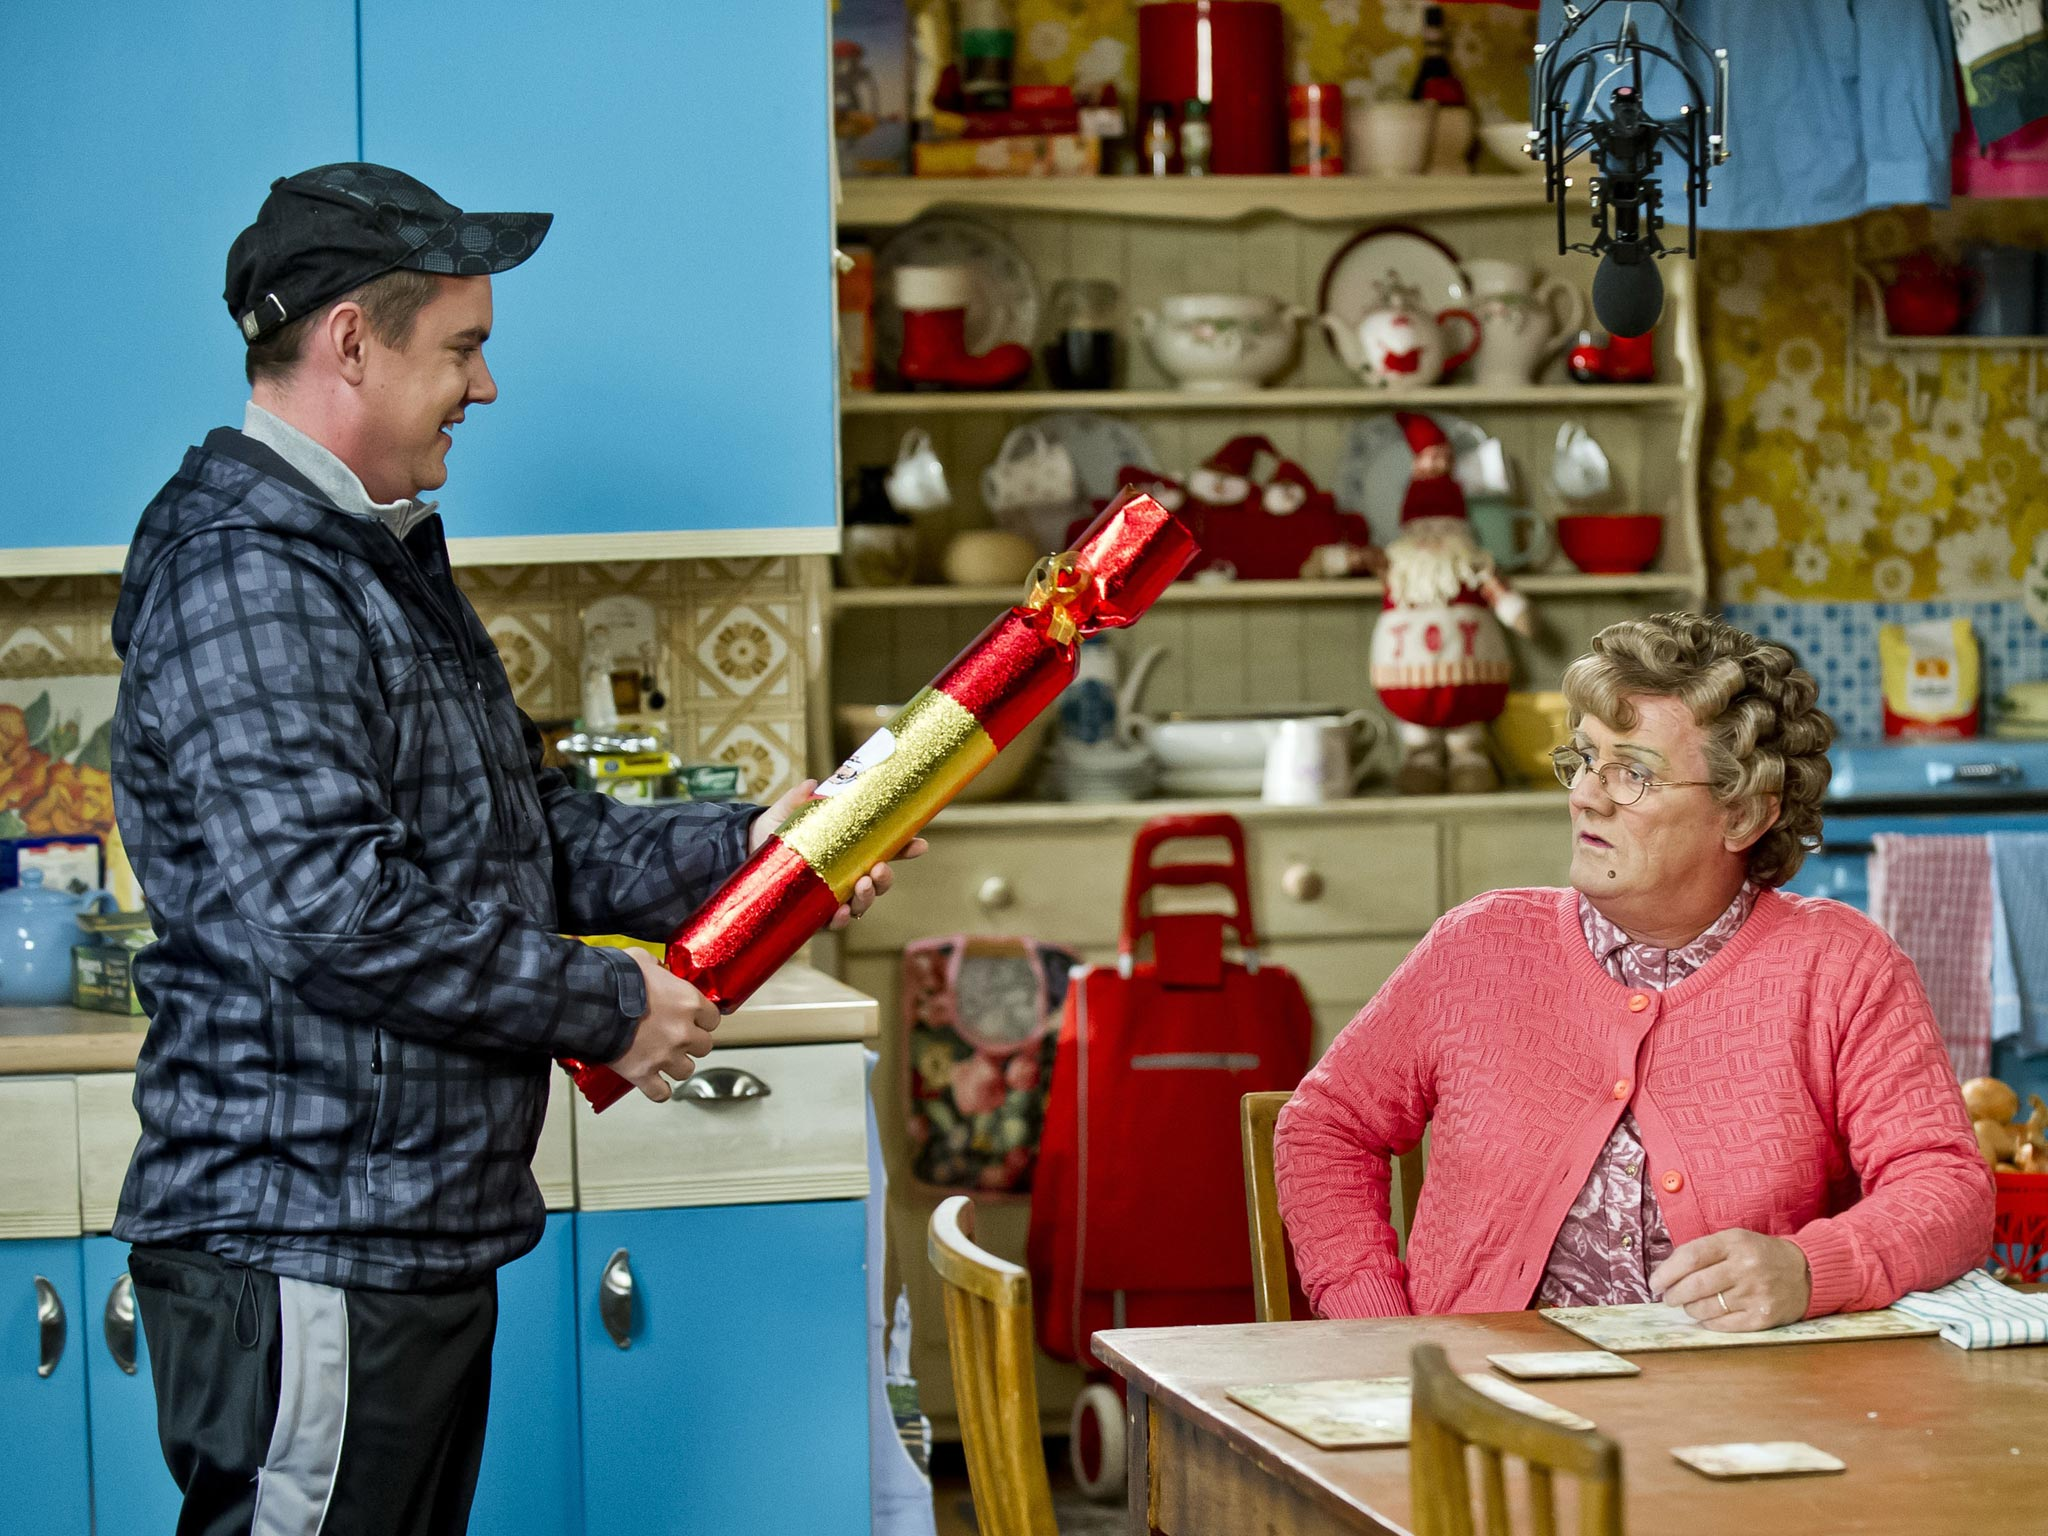 Mrs Brown S Boys Wins Festive Ratings Battle As Eastenders Loses Top Spot The Independent